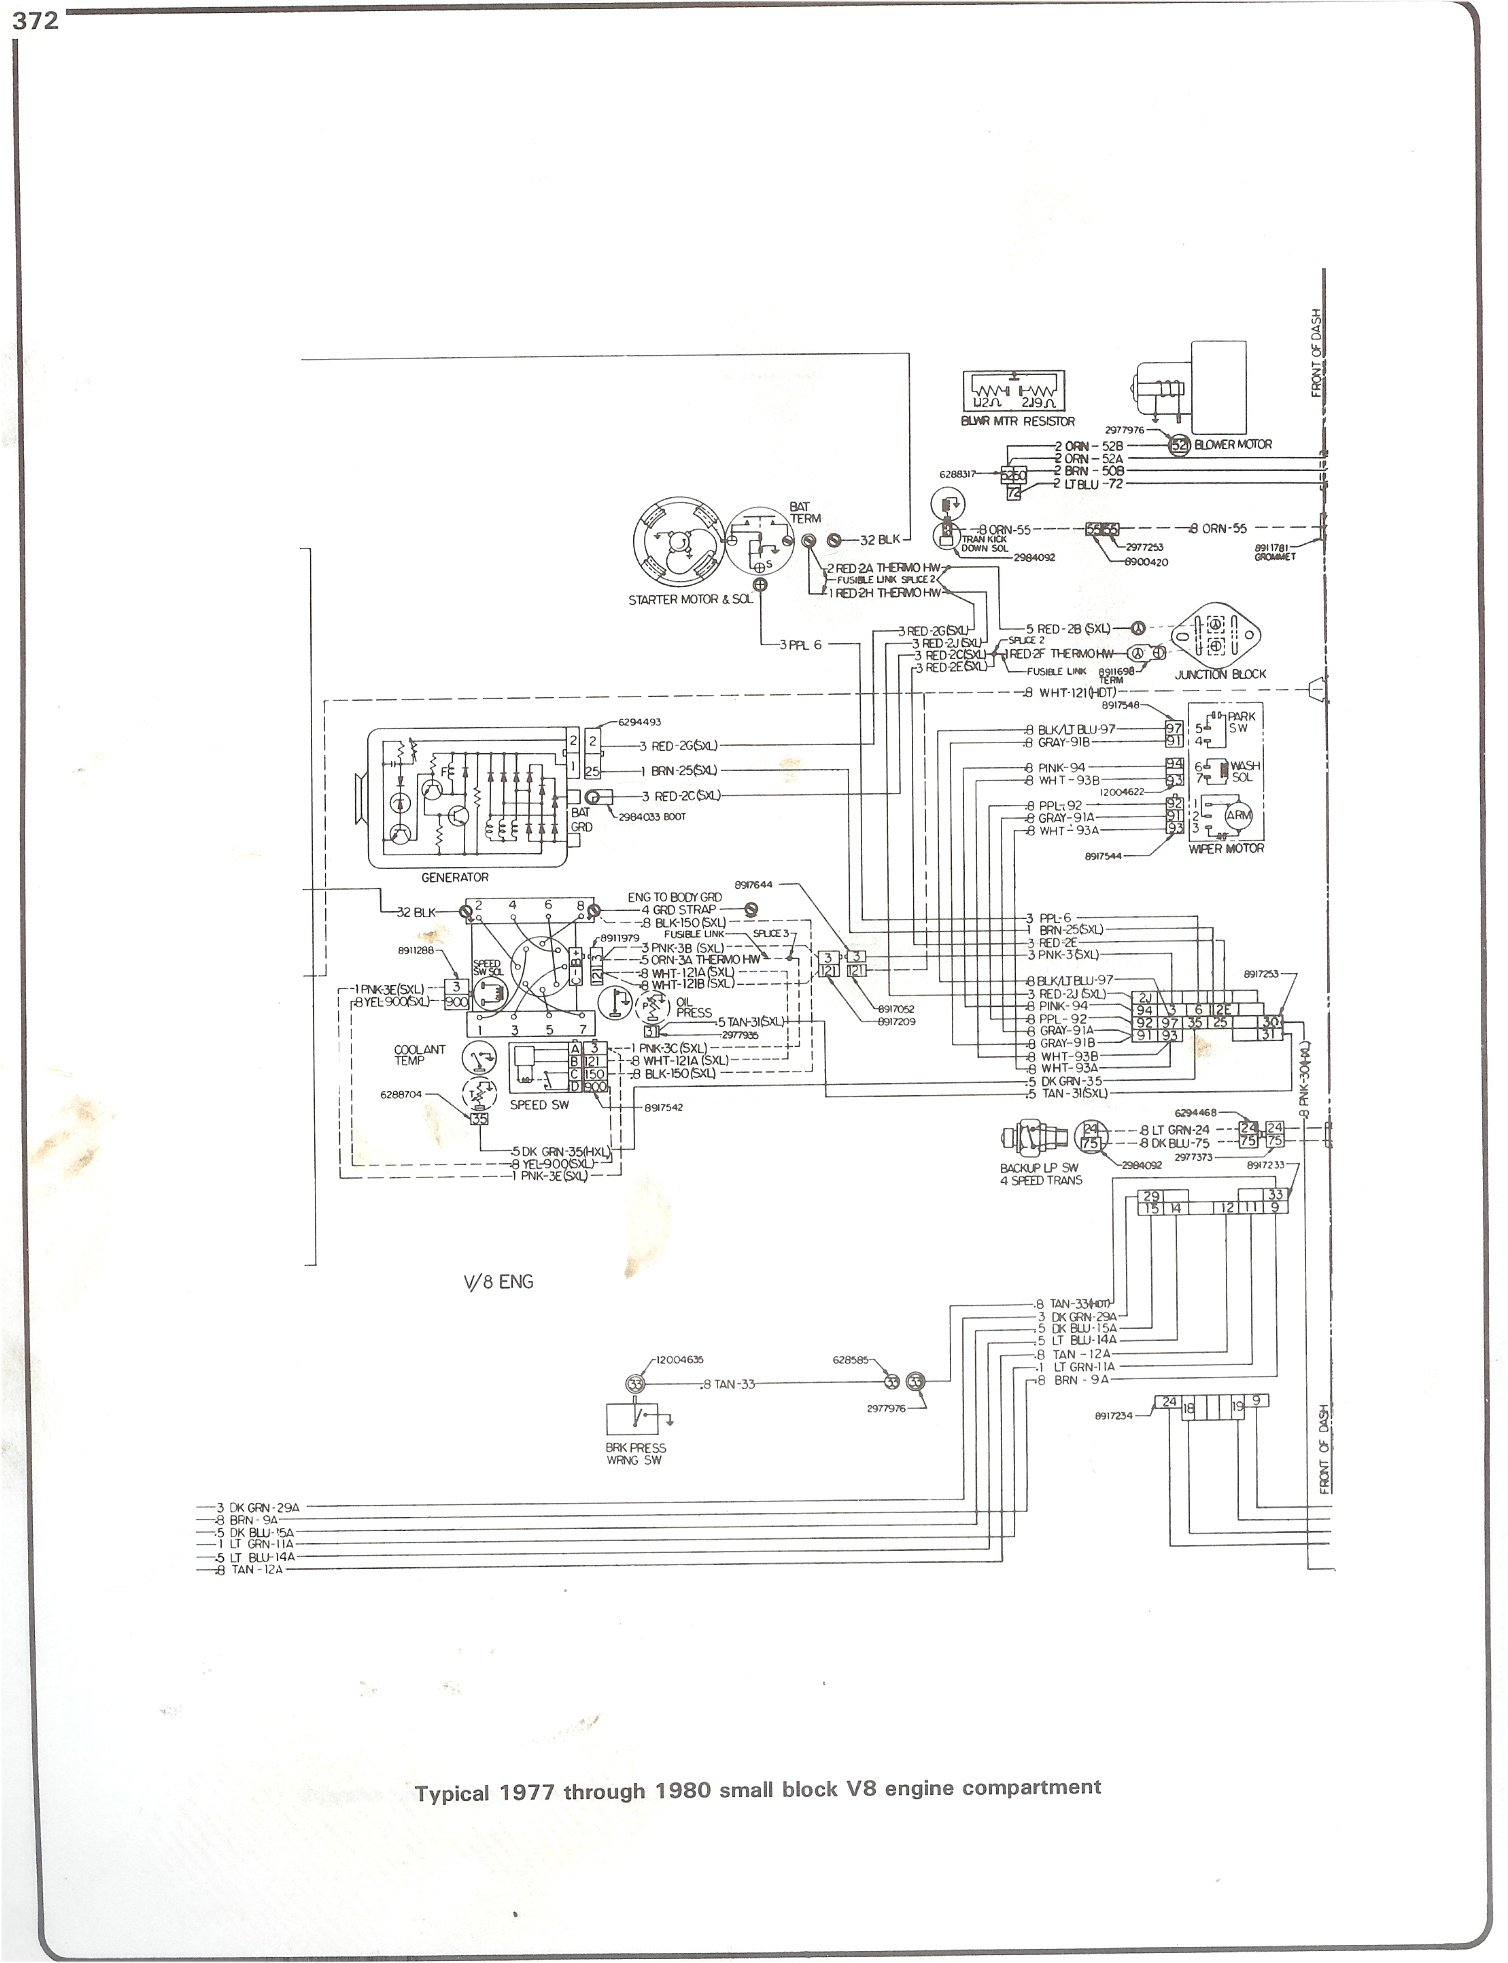 81 Chevy K20 Engine Wiring Diagram 1985 Chevy Truck Wiring